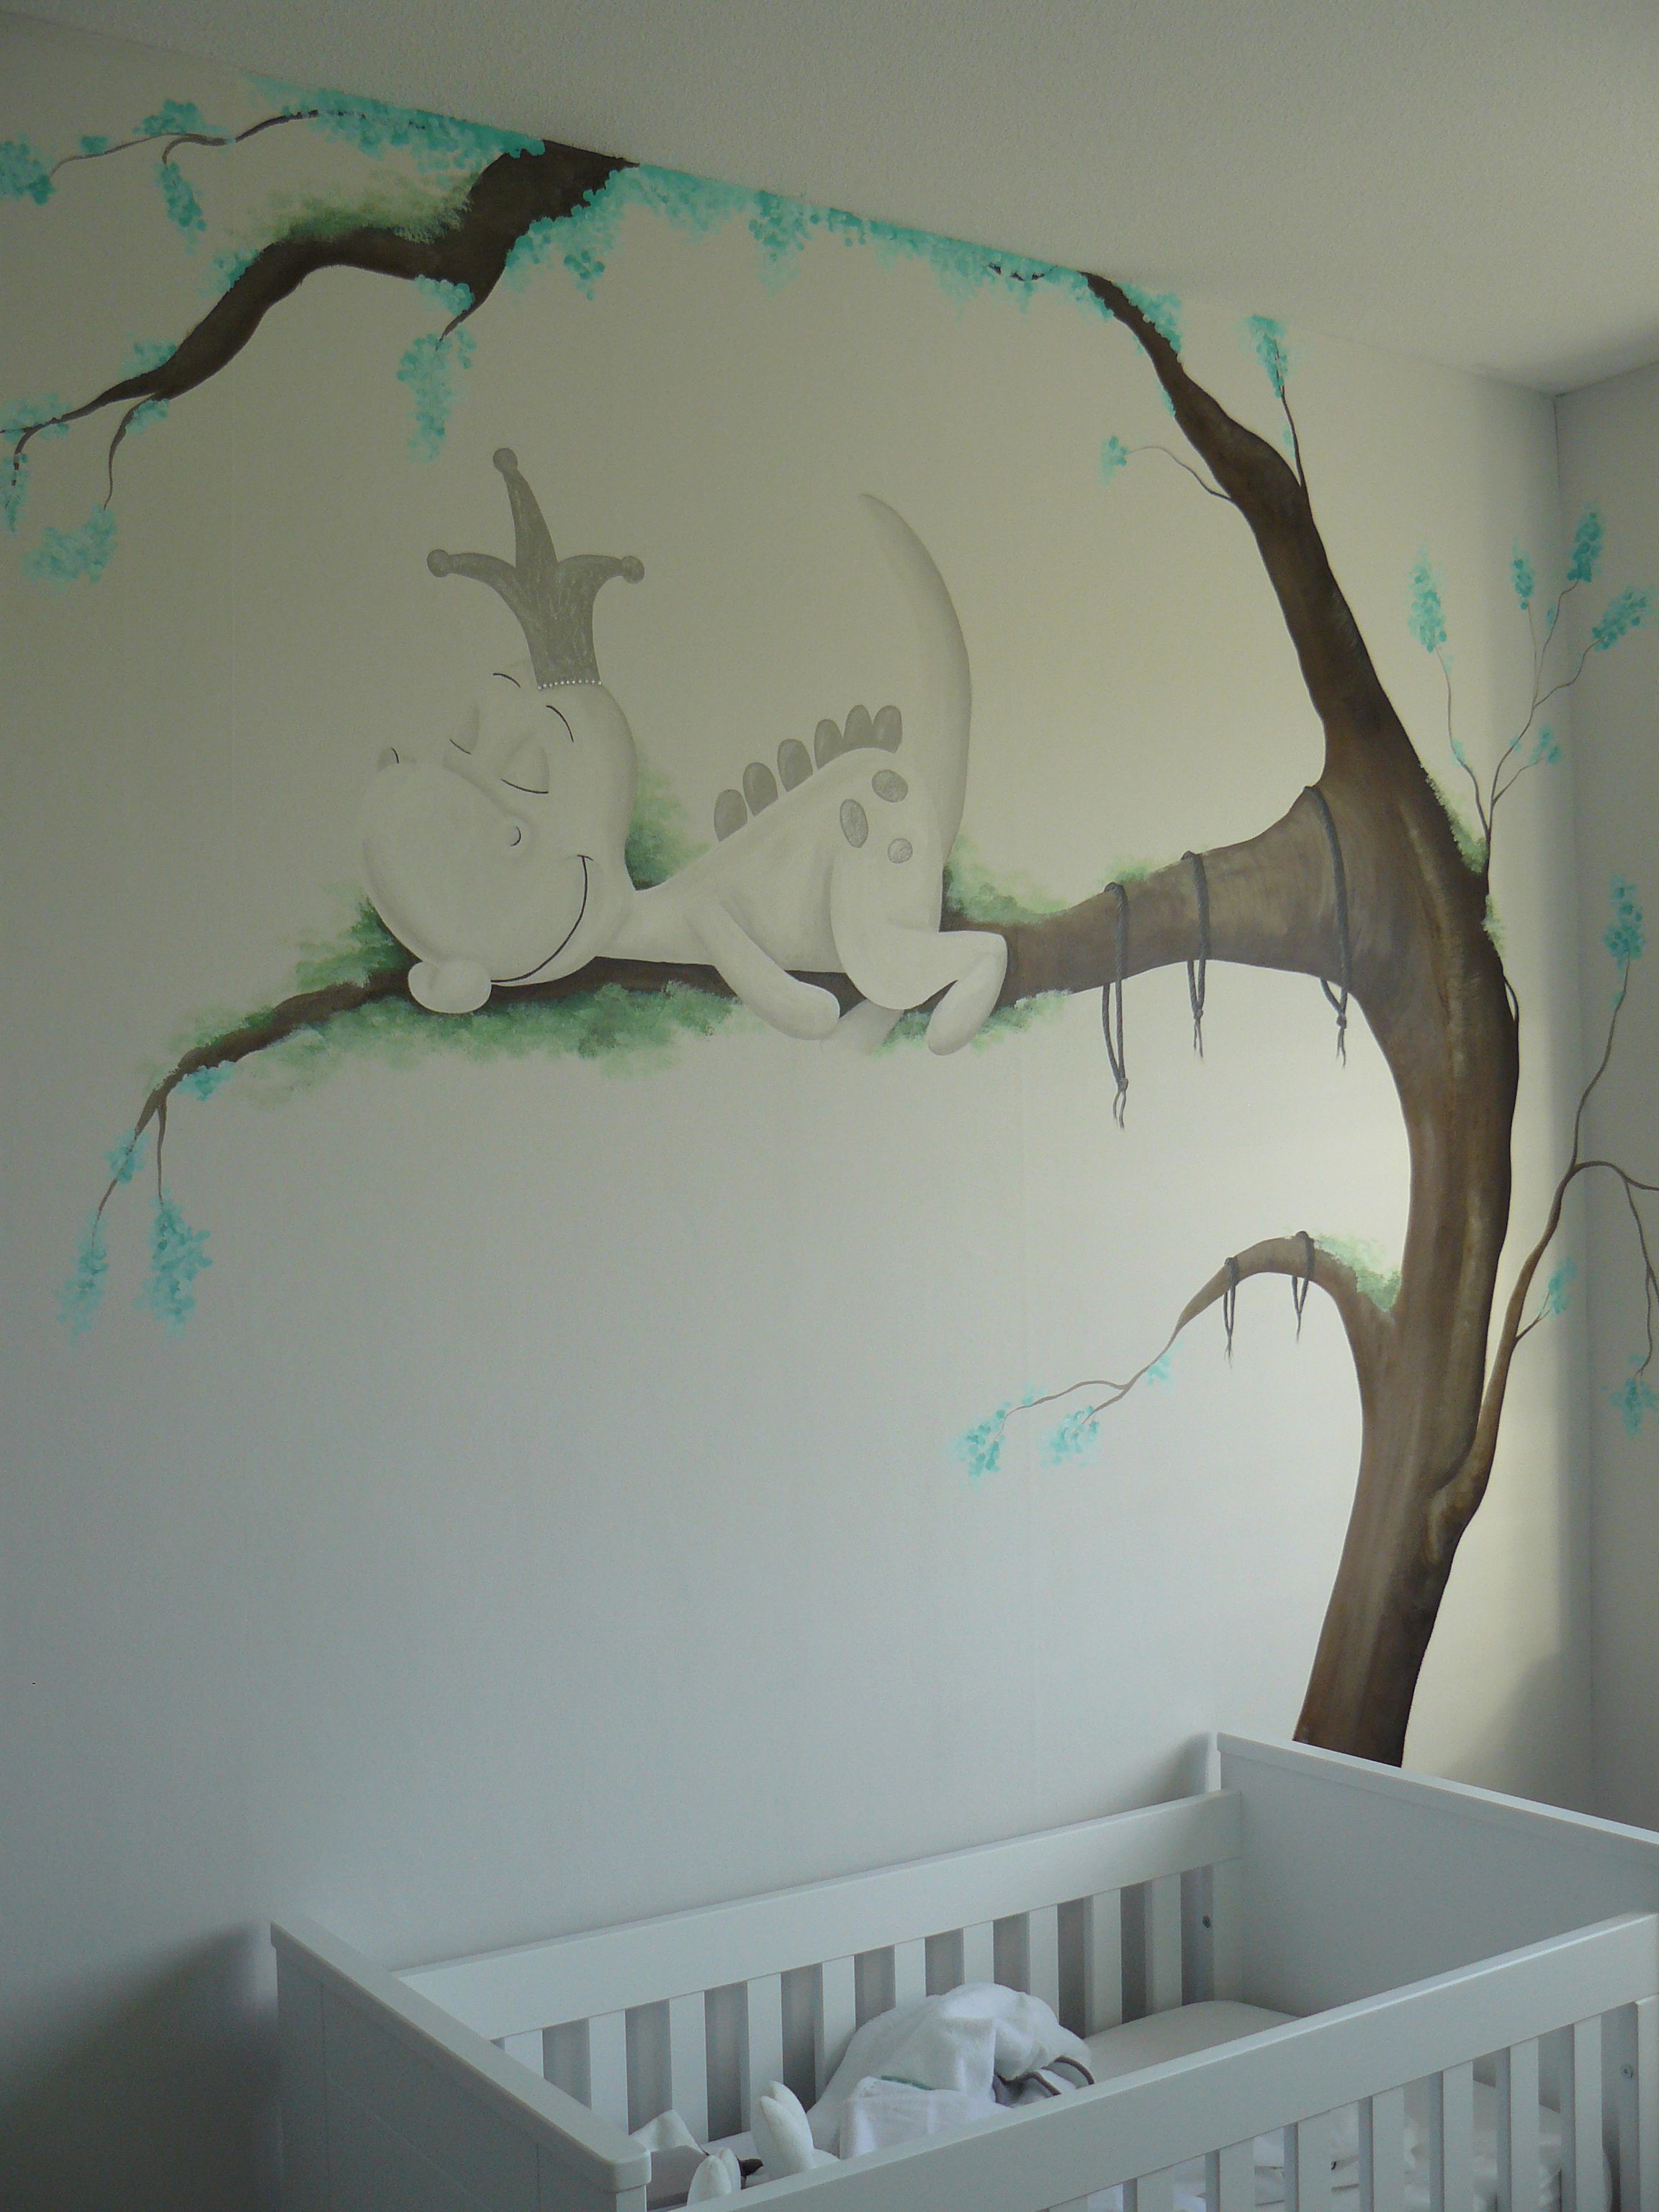 Babykamer Decoratie Boom.Pin Van Filiz Ertas Op Walls In 2019 Baby Bedroom Baby Cribs En